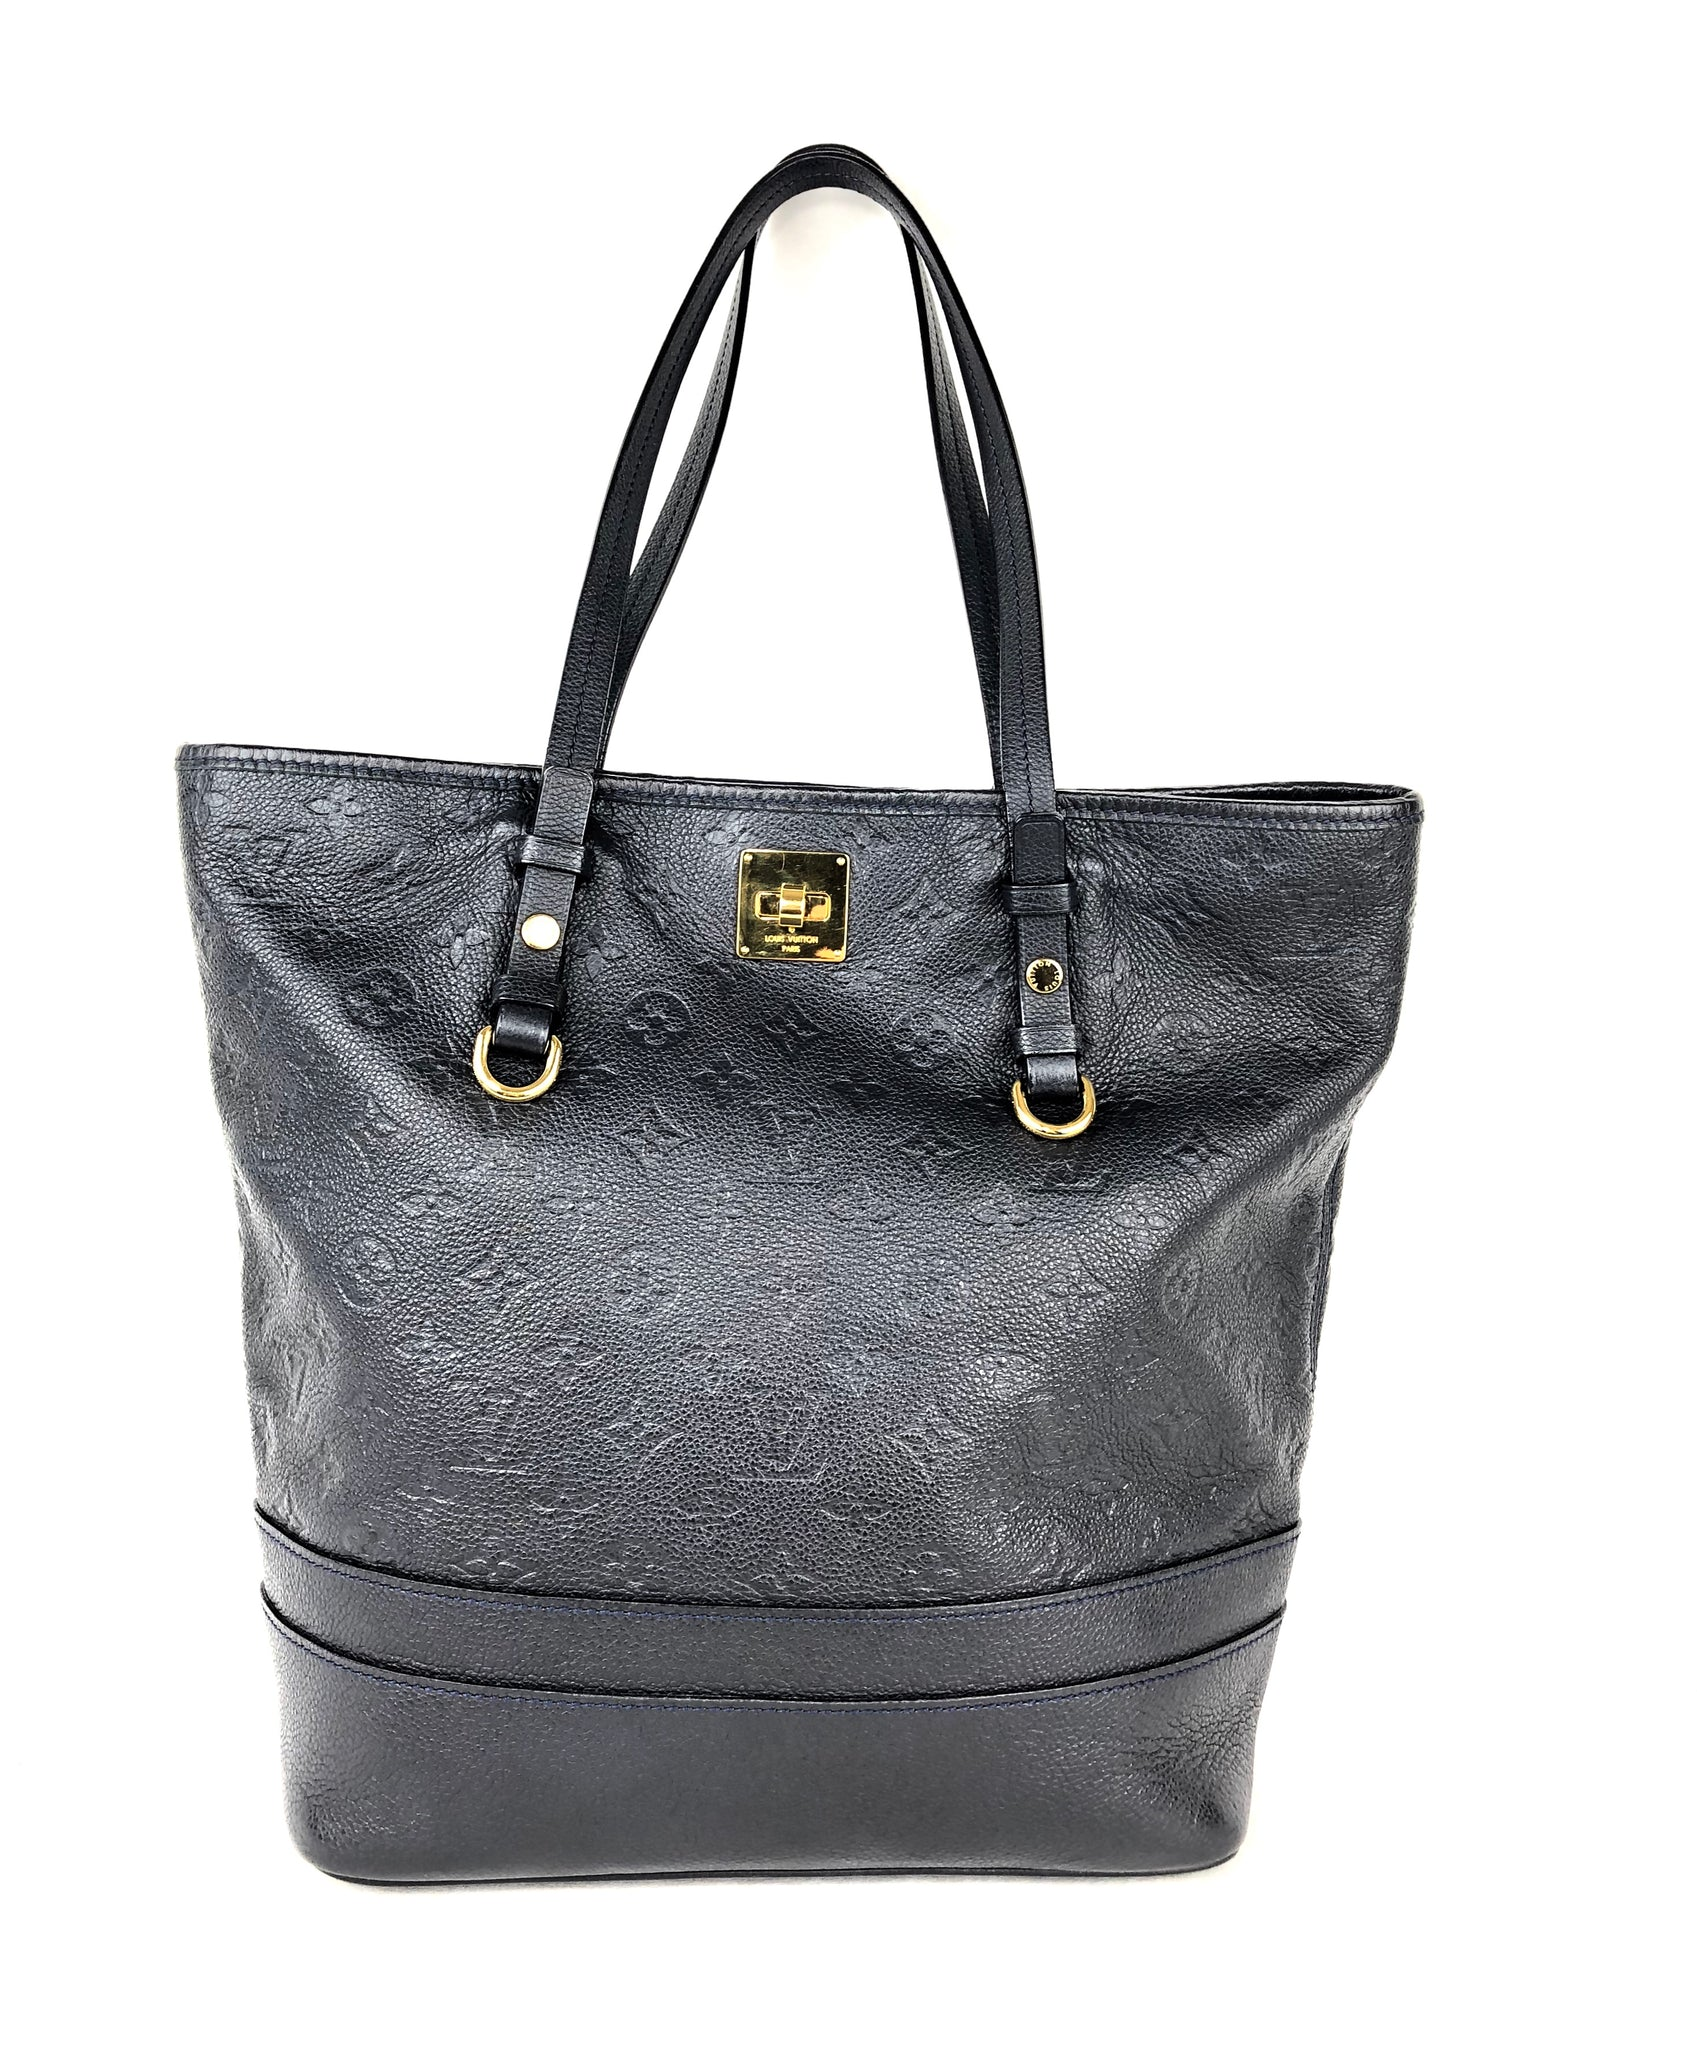 LOUIS VUITTON Empreinte Citadine PM Infini Shoulder Bag (Deep Navy)